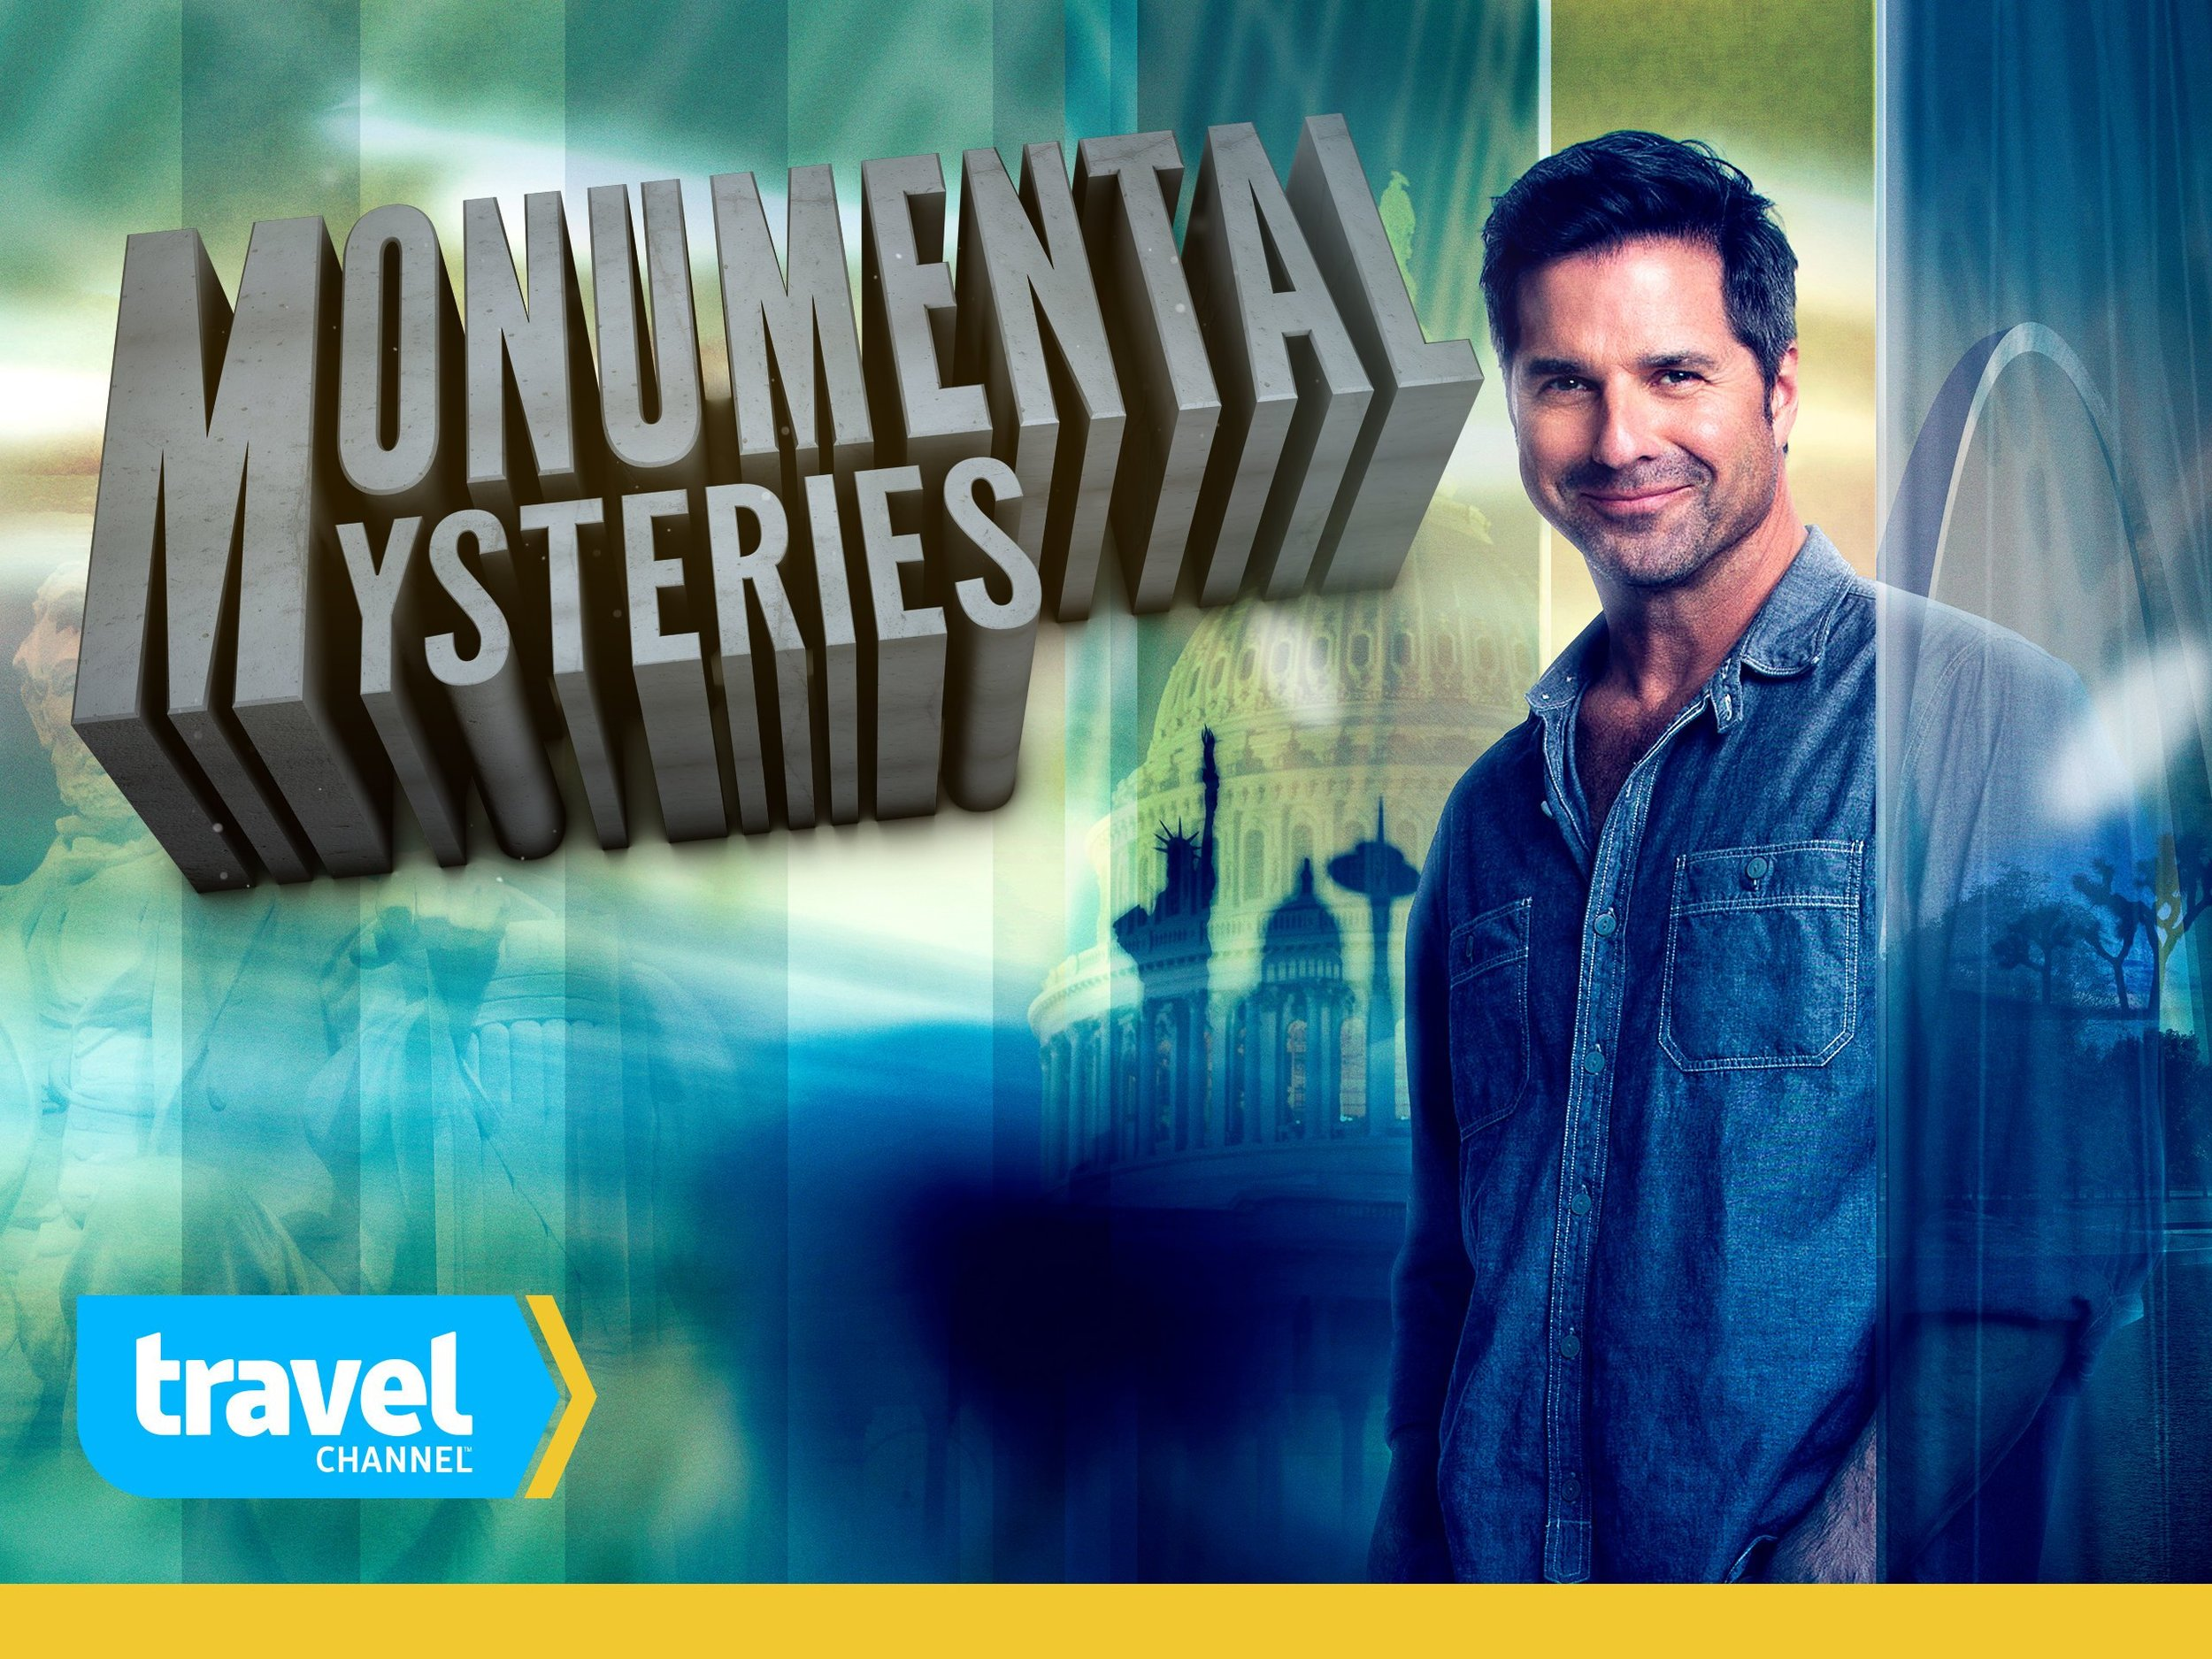 Monumental Mysteries - Travel Channel